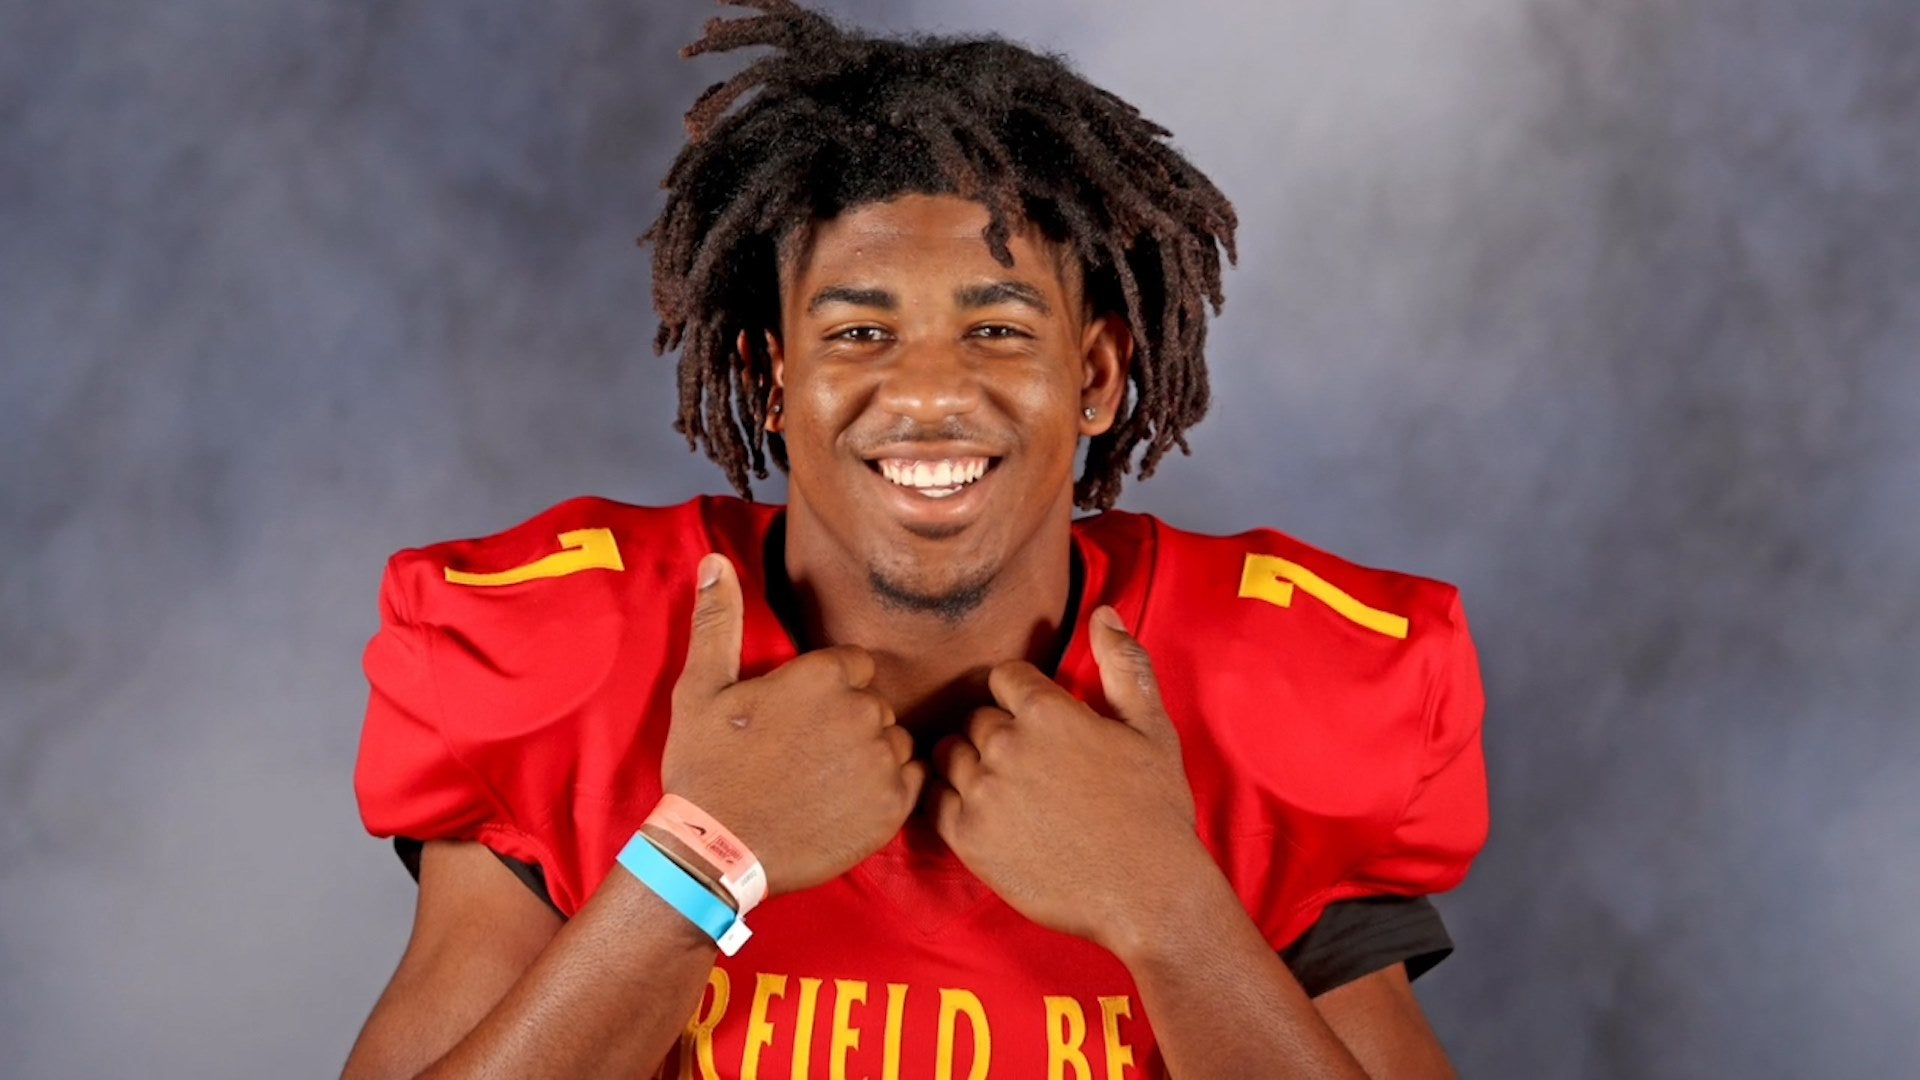 Family Of High School Football Star Who Died By Suicide Thank Public For Support